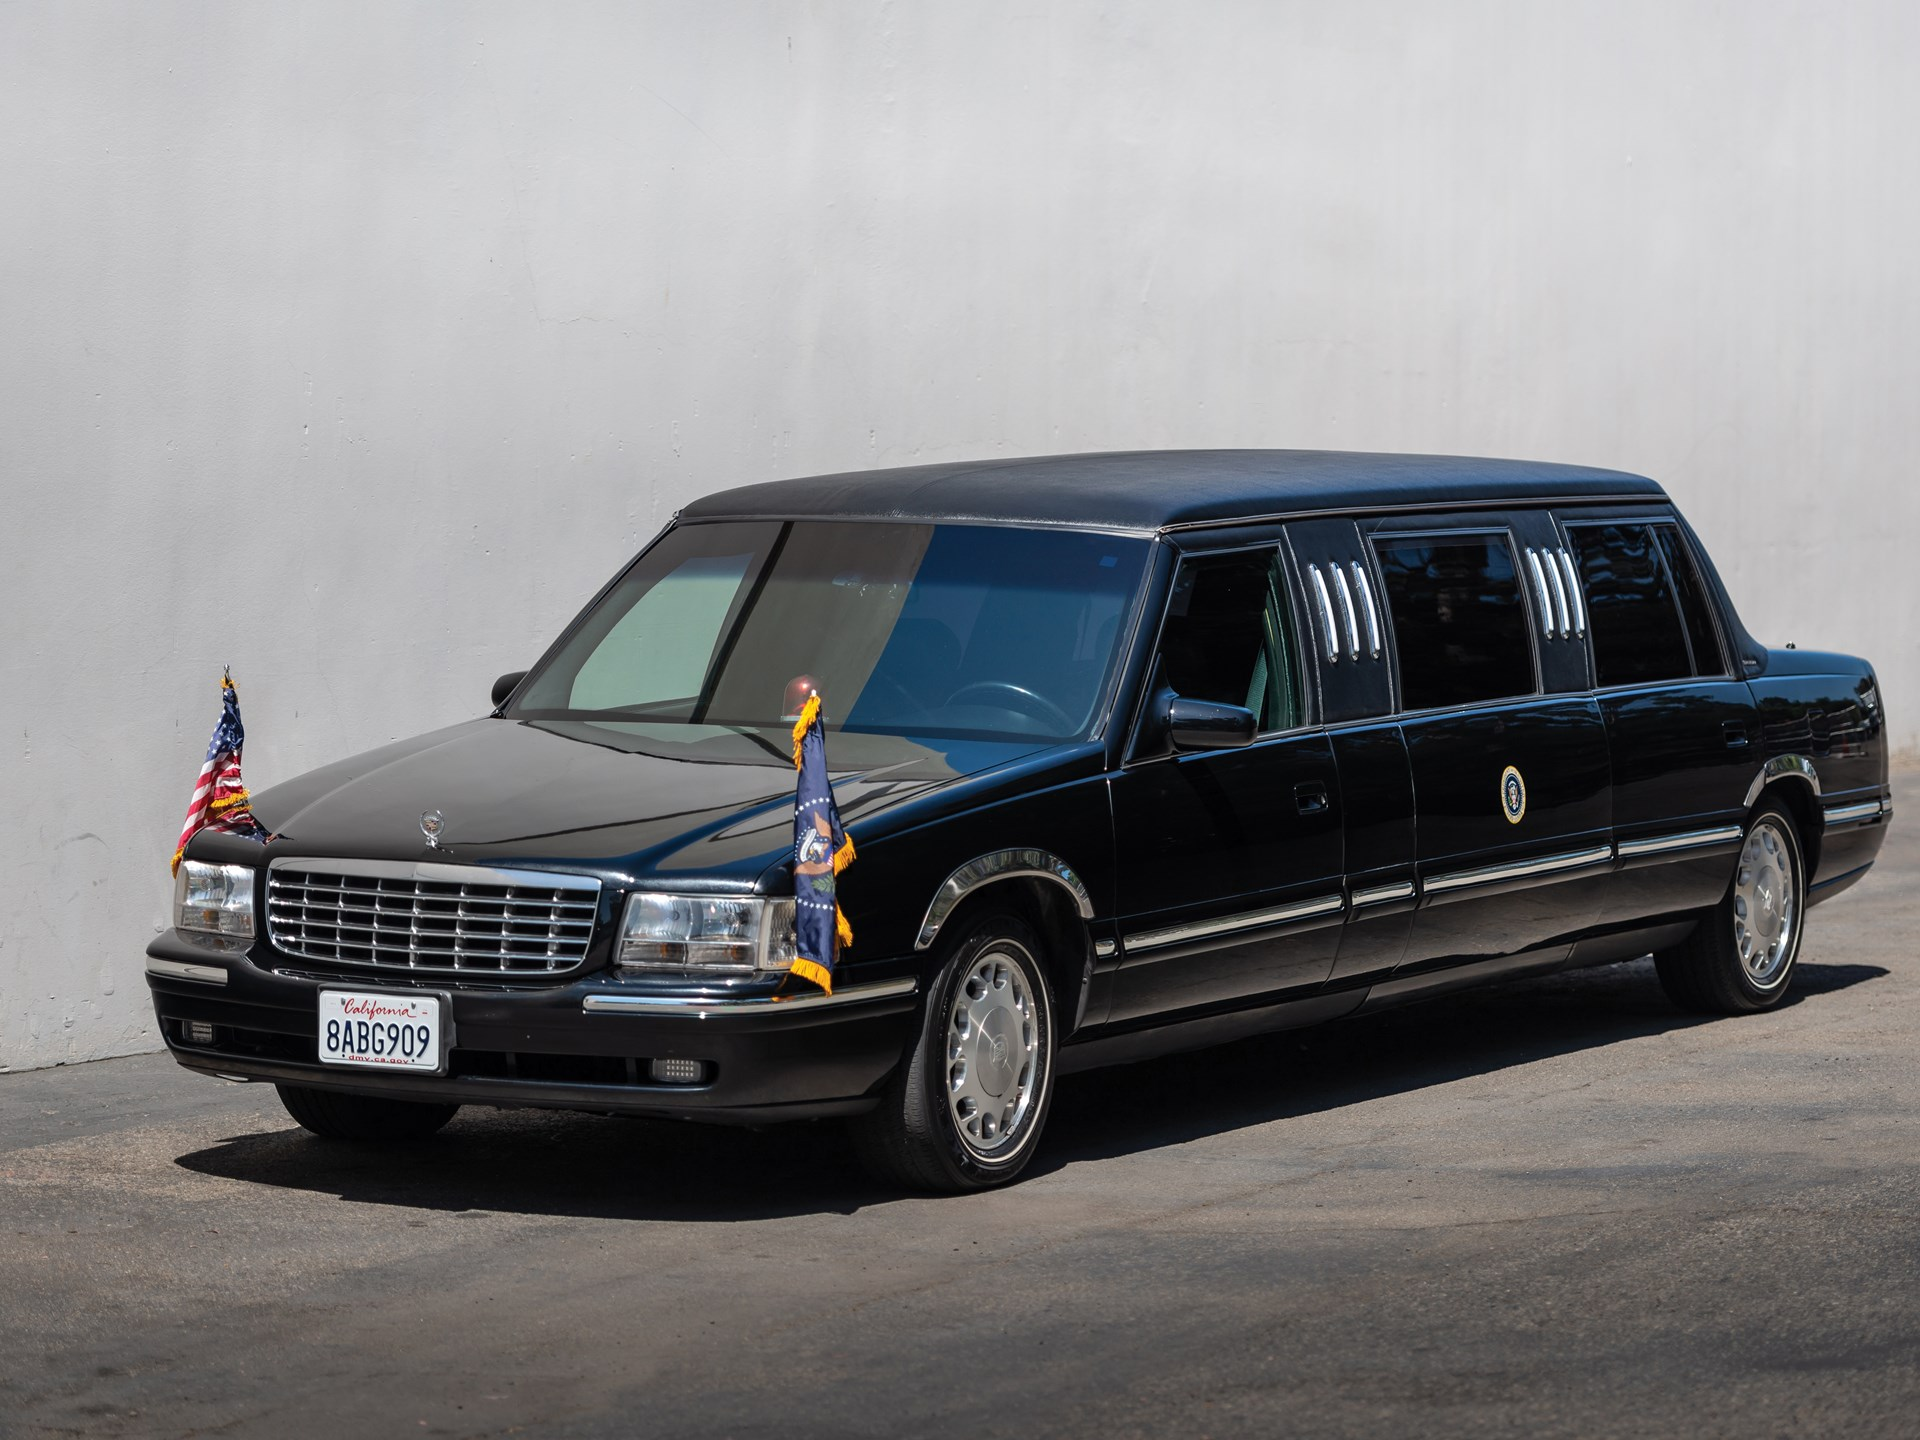 1999 Cadillac Deville Presidential-Style State Limousine by Superior Coach